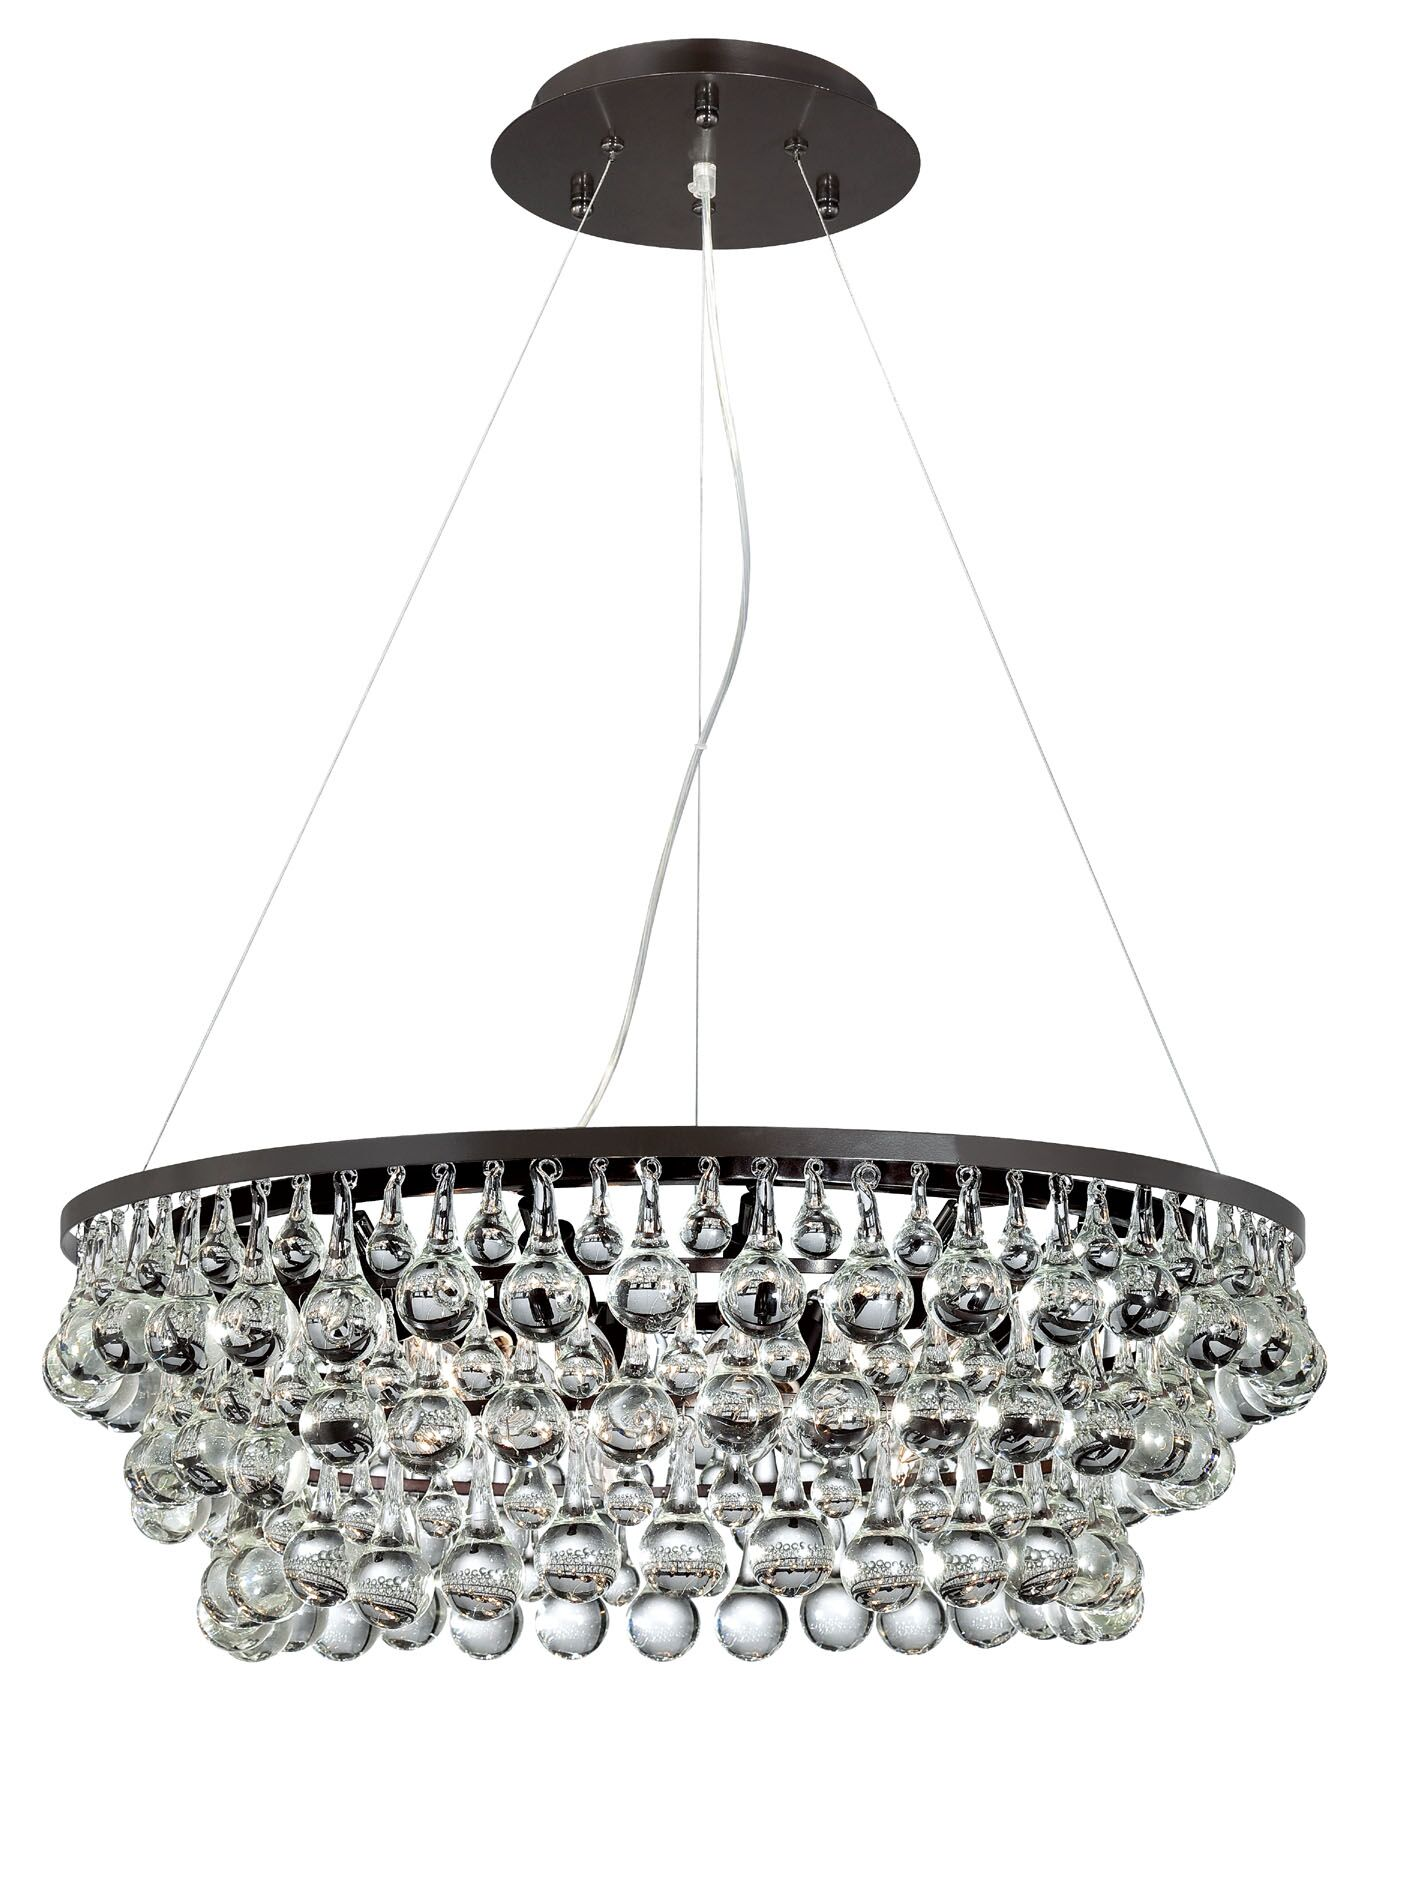 Lemaster 12-Light Novelty Chandelier